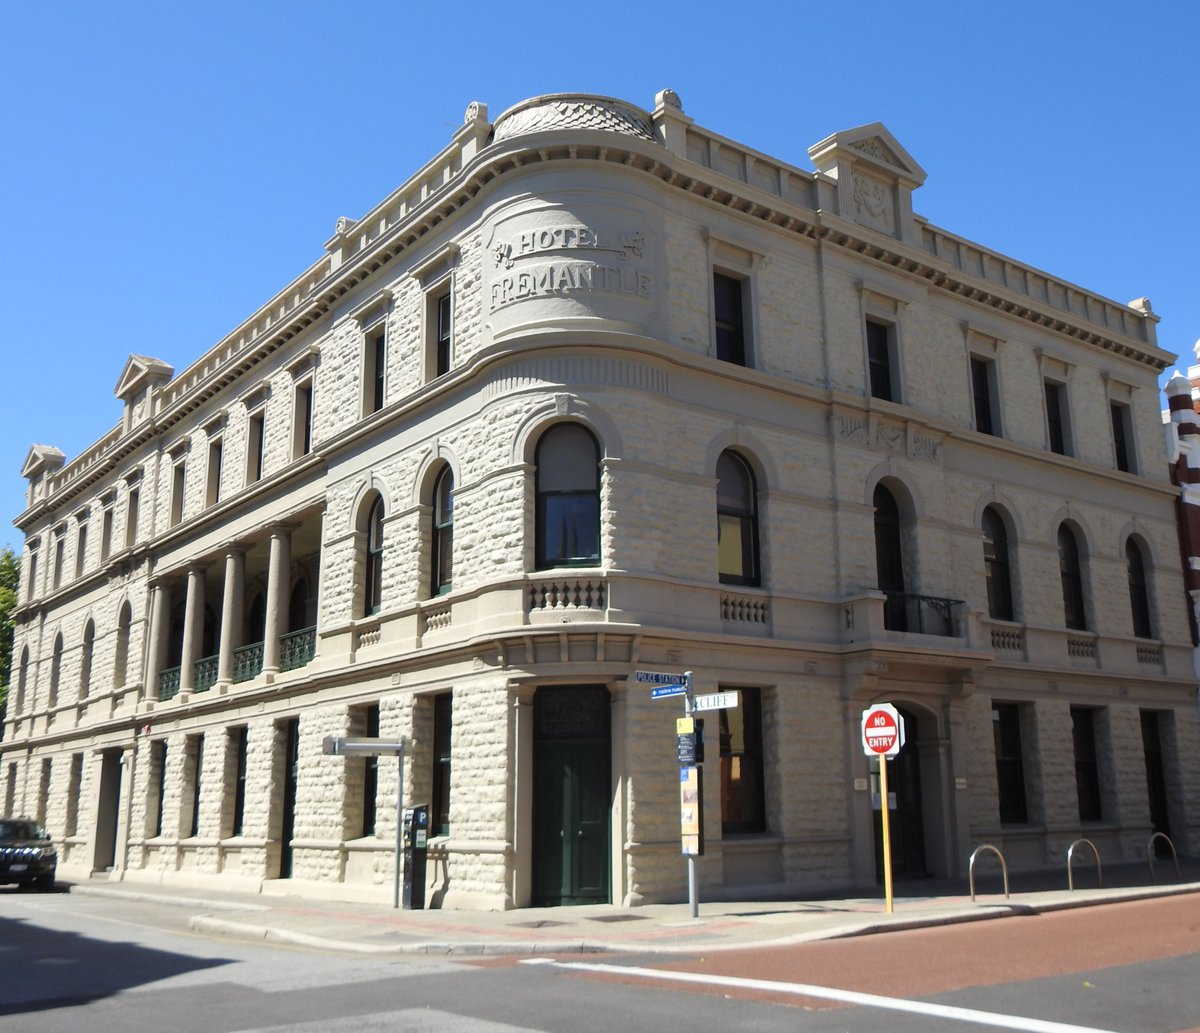 Holiday in WA! Take a walking tour in Fremantle. Learn about the early days of Hotels and Hooligans. The old Fremantle Hotel.  Read more at:    #ayearinperth  #solotraveller  #solotraveler #maturesolotraveler #perth #freo #fremantle #walkingtour #pubs